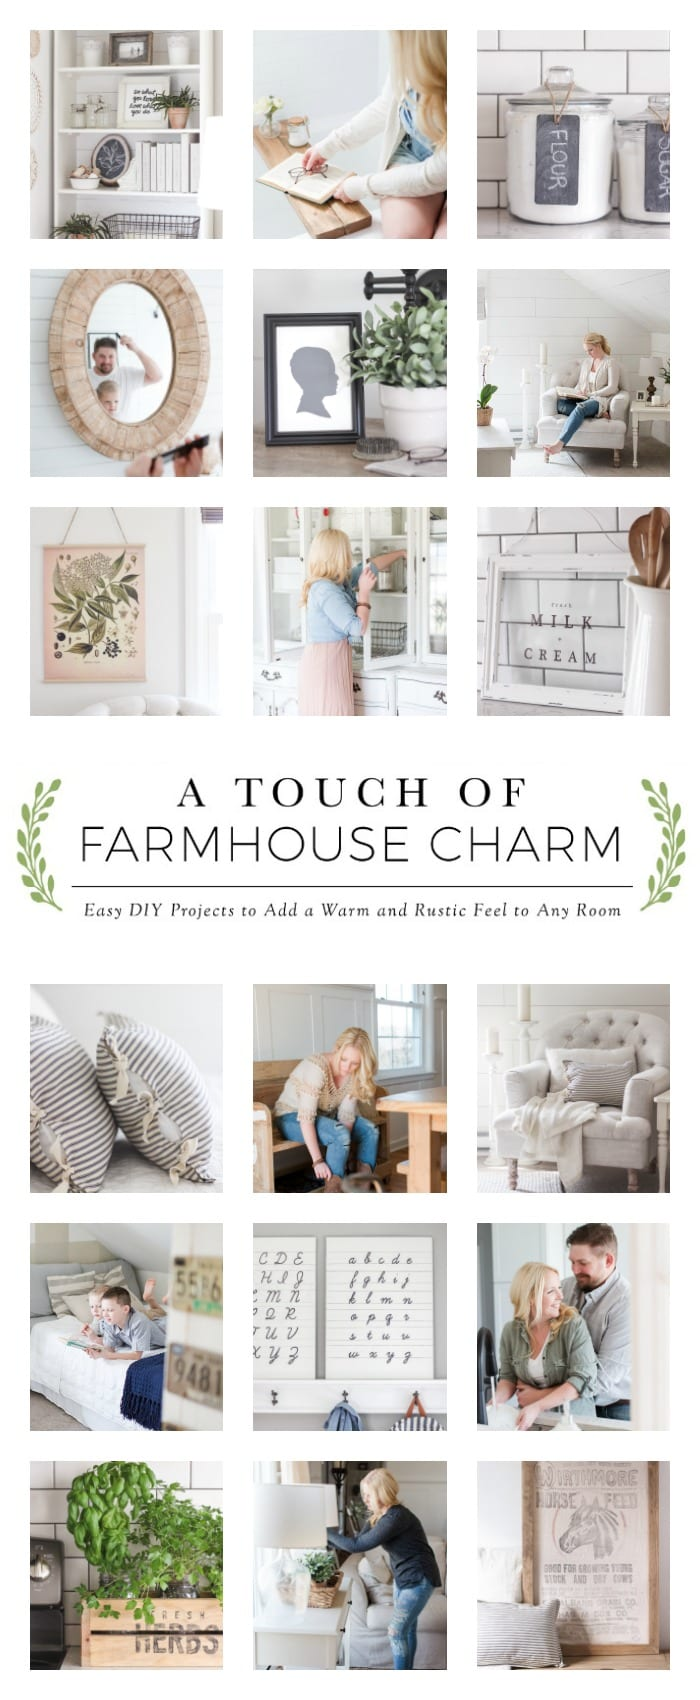 Make And Take Room In A Box Elizabeth Farm: Box Grater Towel Rack + A Touch Of Farmhouse Charm